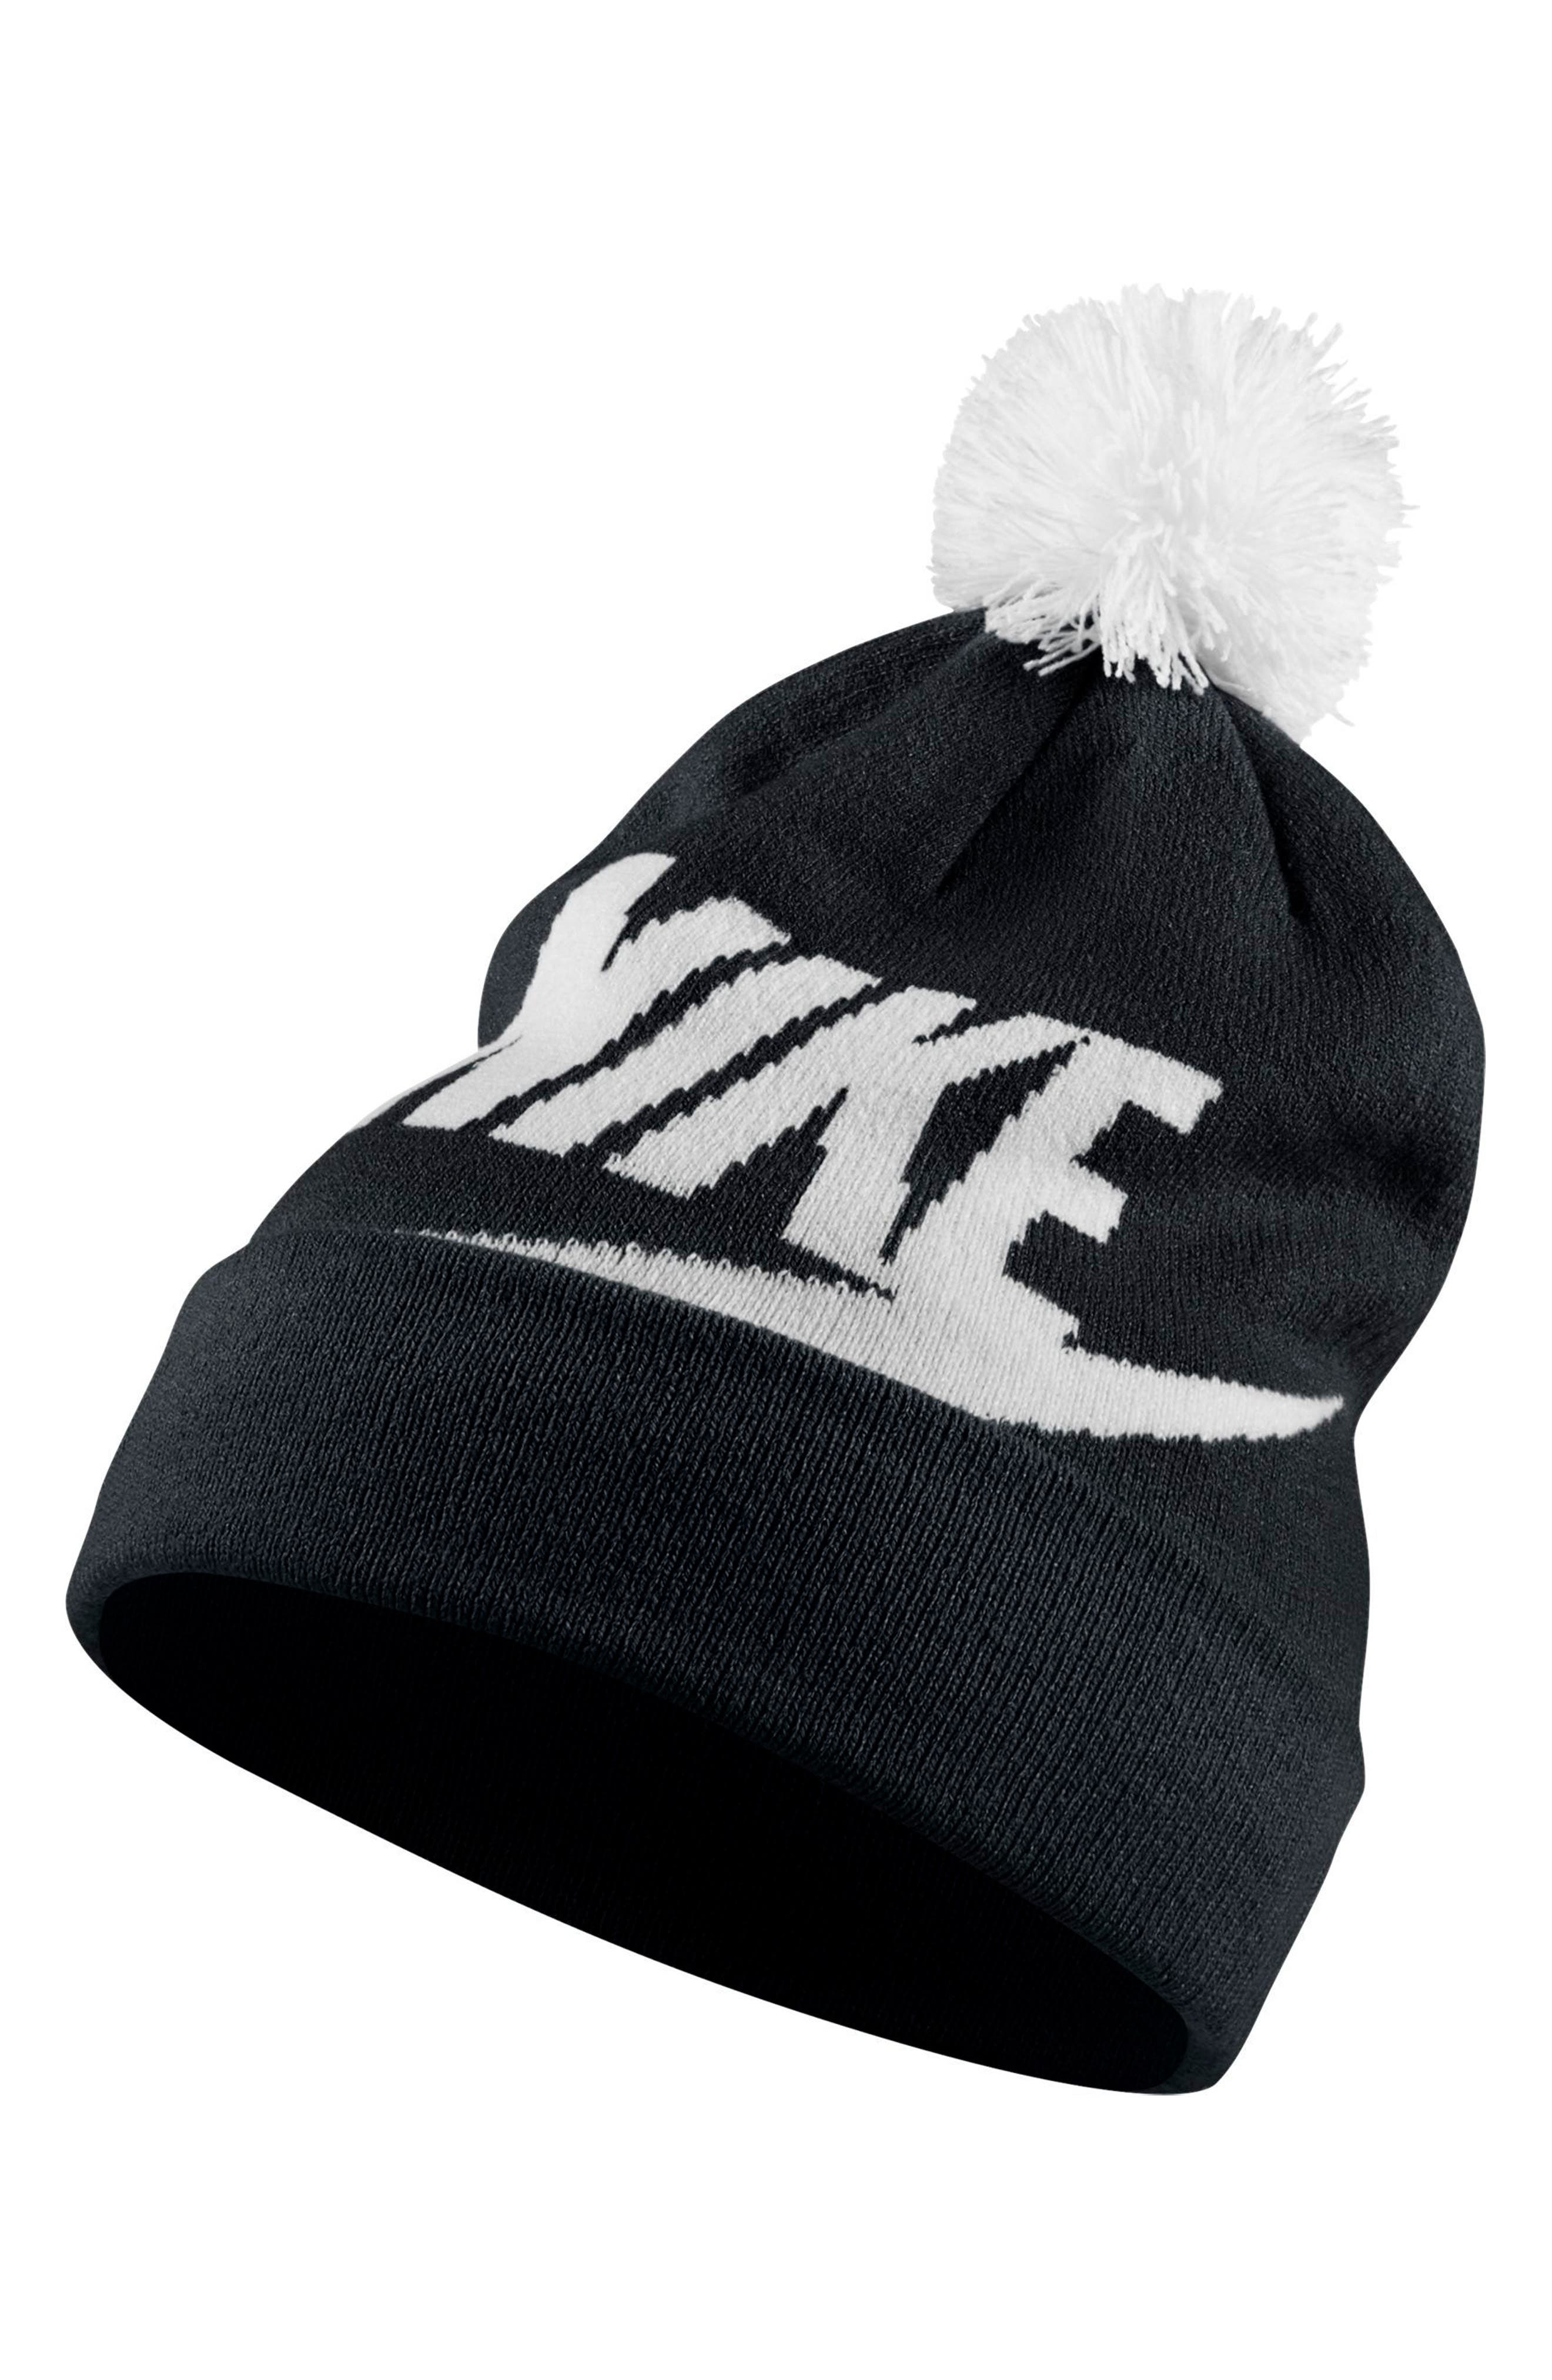 Sportswear Women's Beanie with Removable Pom,                         Main,                         color, Black/ White/ White